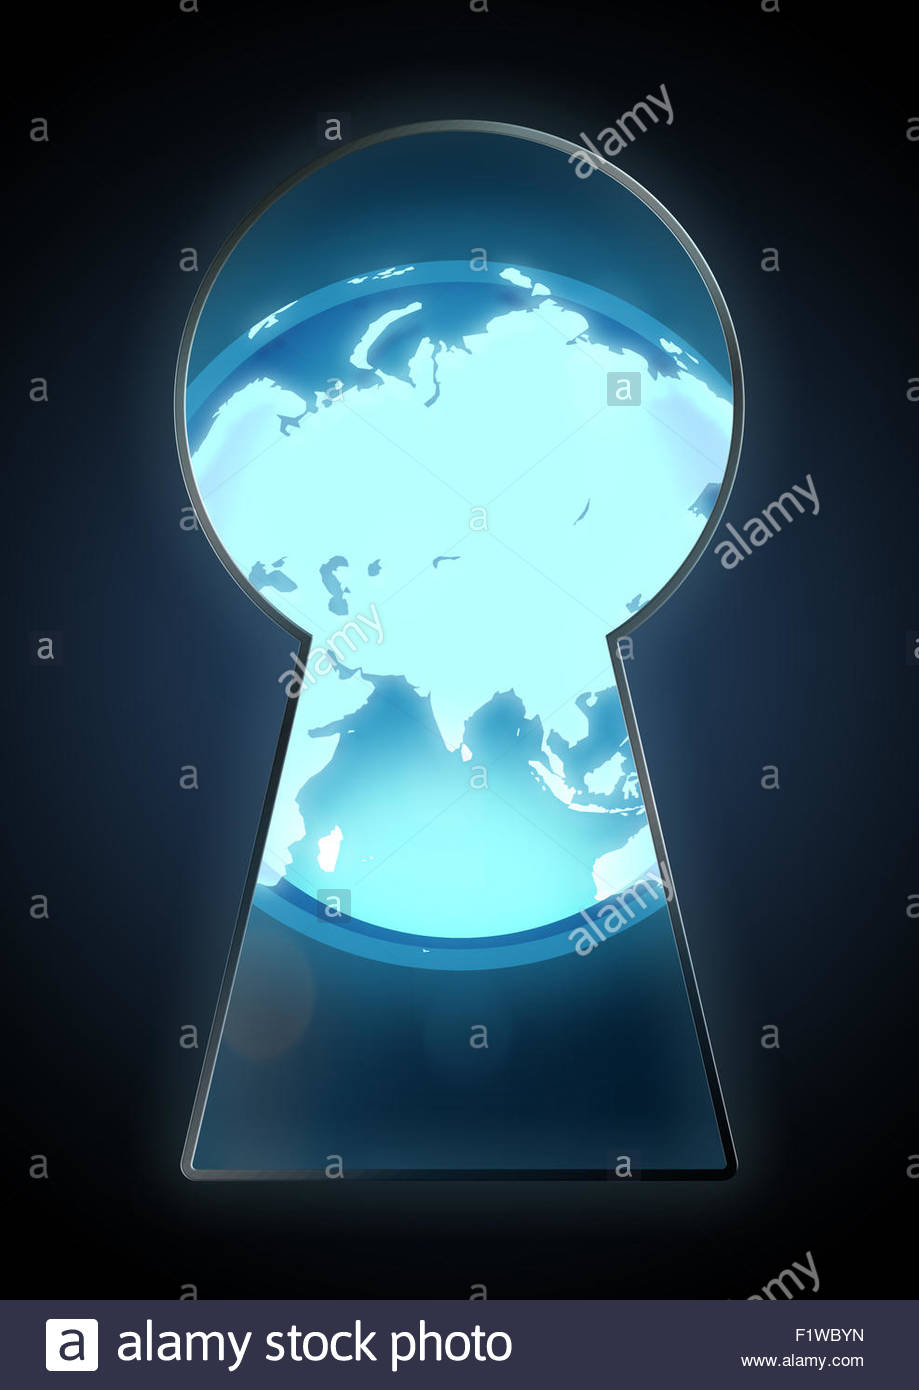 Illustration of a globe seen through a key hole - Stock Image